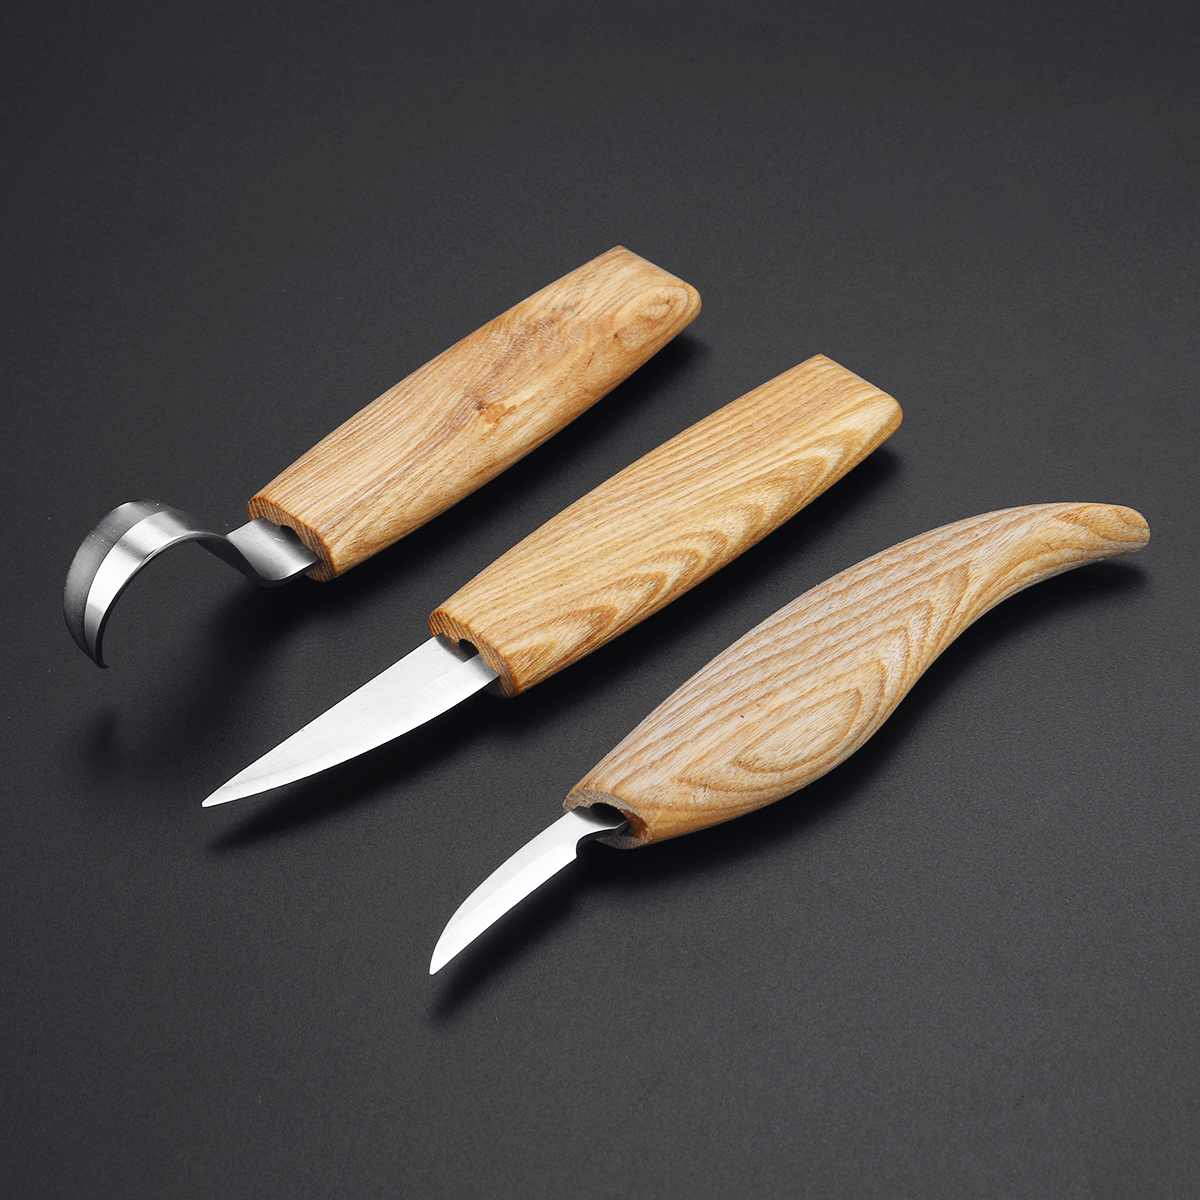 3pcs Woodcarving Cutter Woodwork Carving Knives Set Sculptural DIY Spoon Carving Knives Tool Whittling Beaver Craft